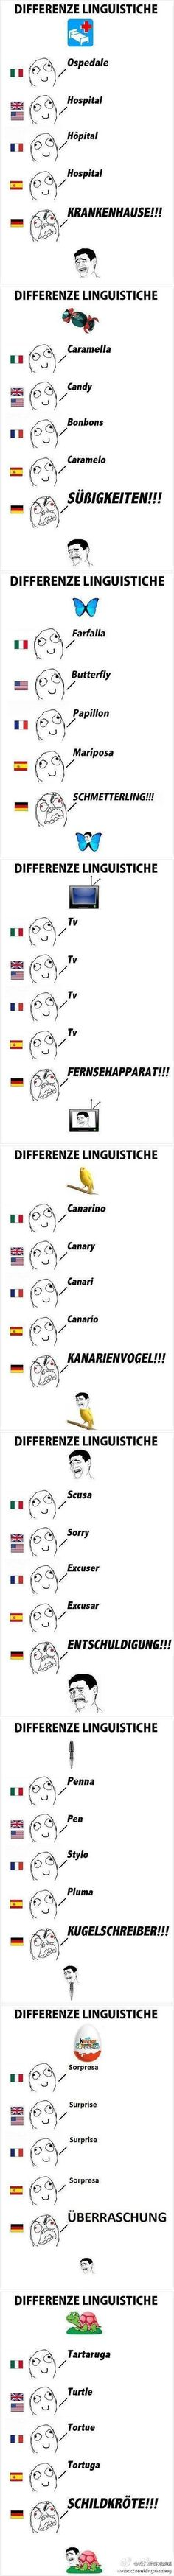 Different languages... German does sound awfully... angry! :)